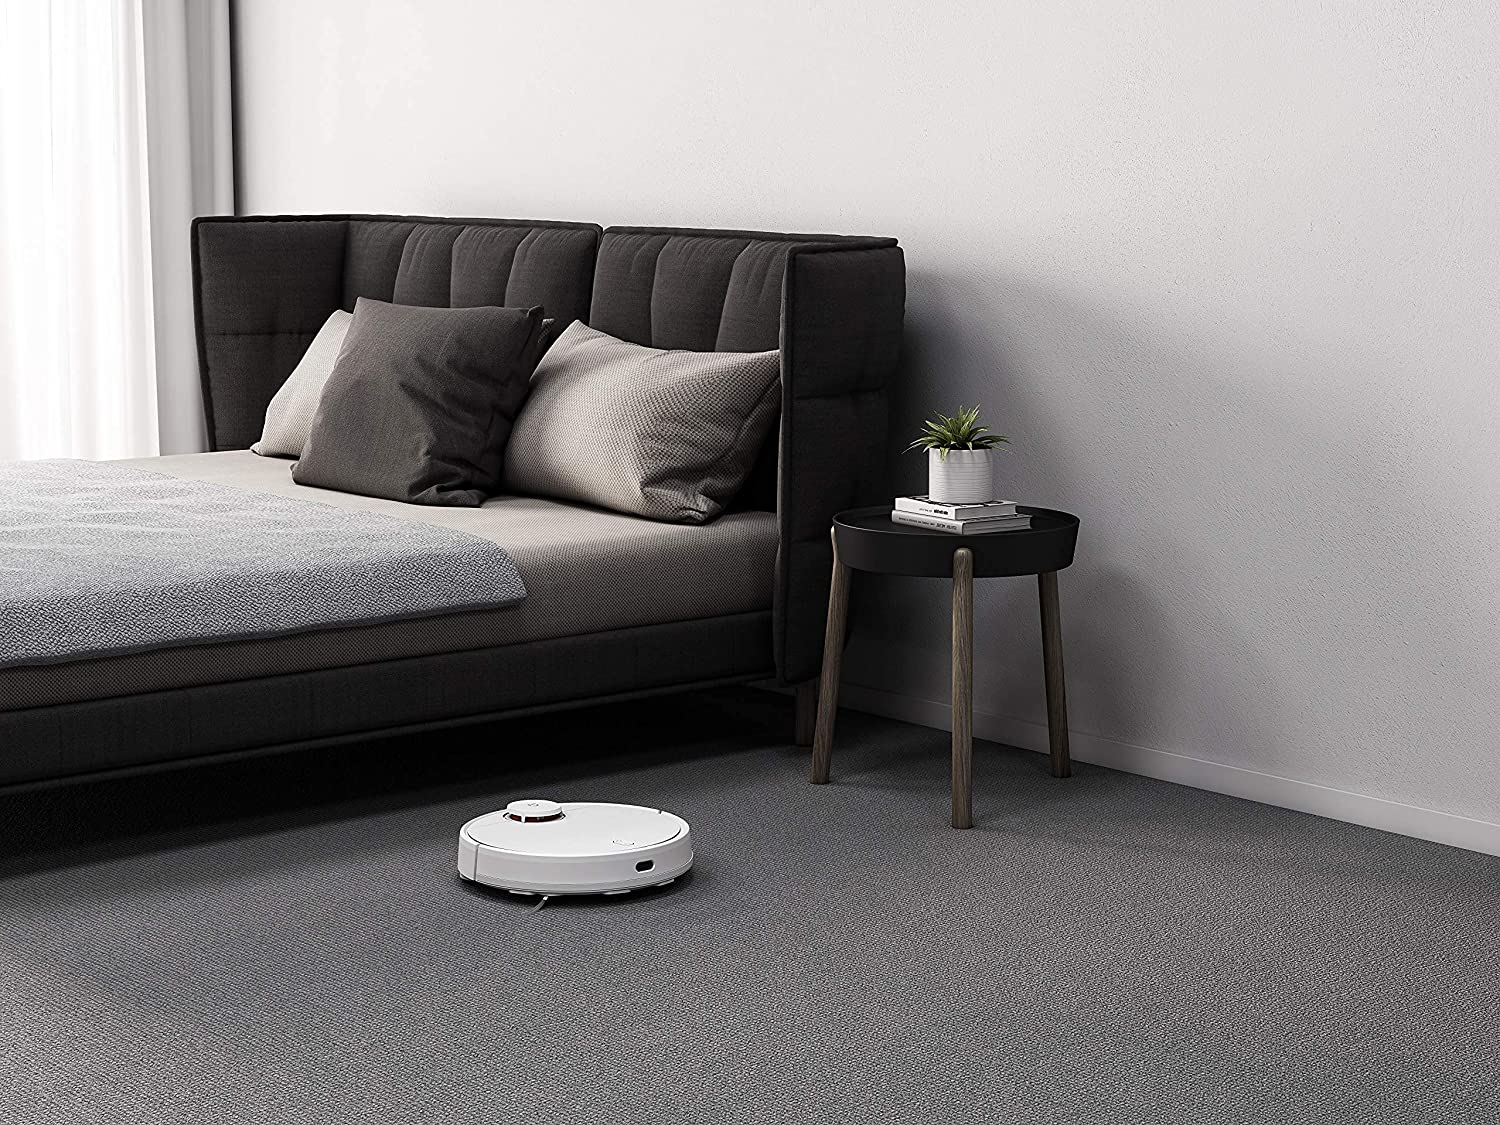 Xiaomi Mi Robot Vacuum Cleaner 2 in 1 Mop-P [Vacuum] Sweep & Mop, Auto-Cleaning Expert, Intelligent Control, Water Tank, 3 Cleaning Modes, Smart Navigation - Works with Google Assistant, Alexa - White